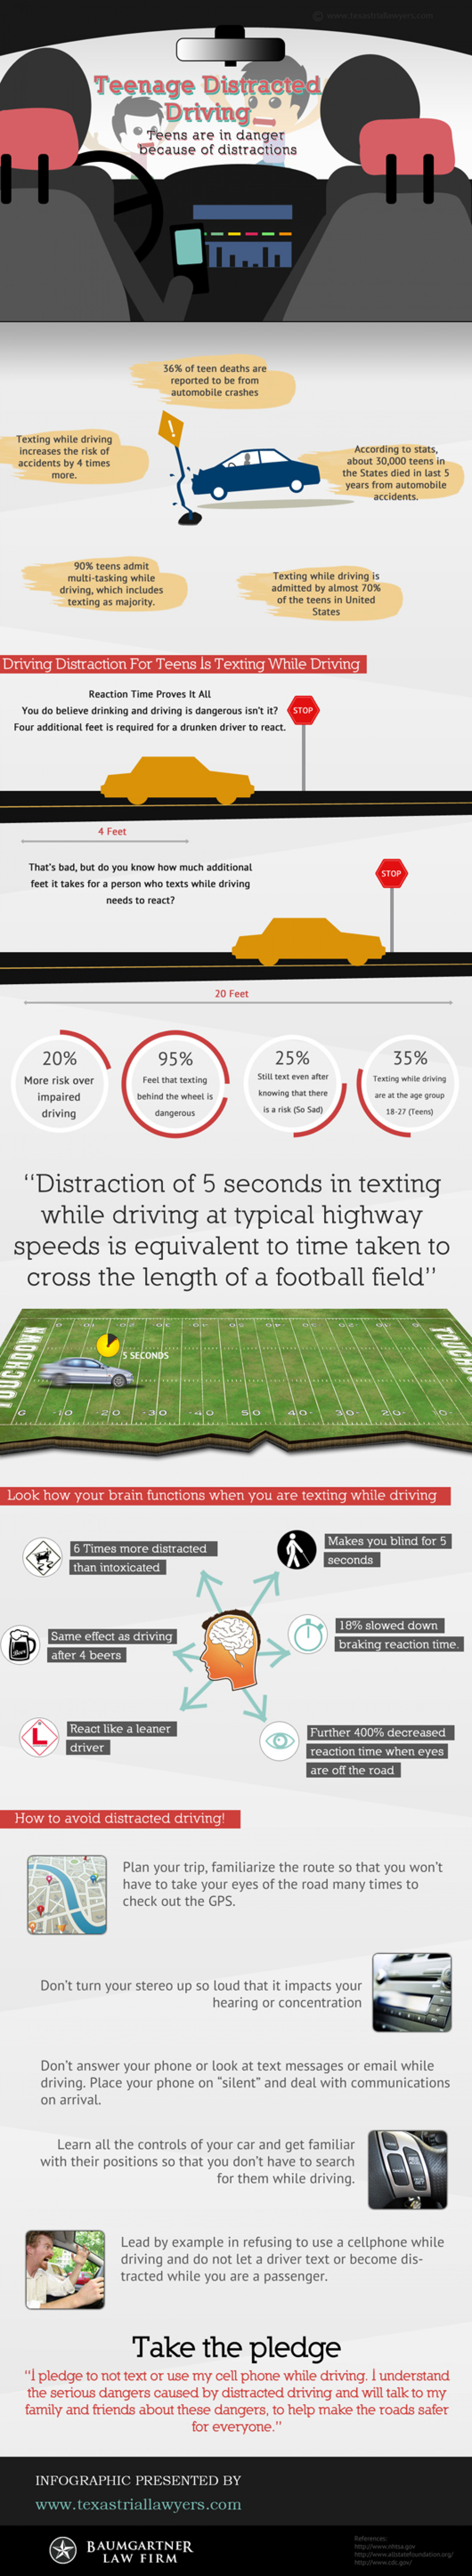 Teenage Distracted Driving [Infographic] Infographic